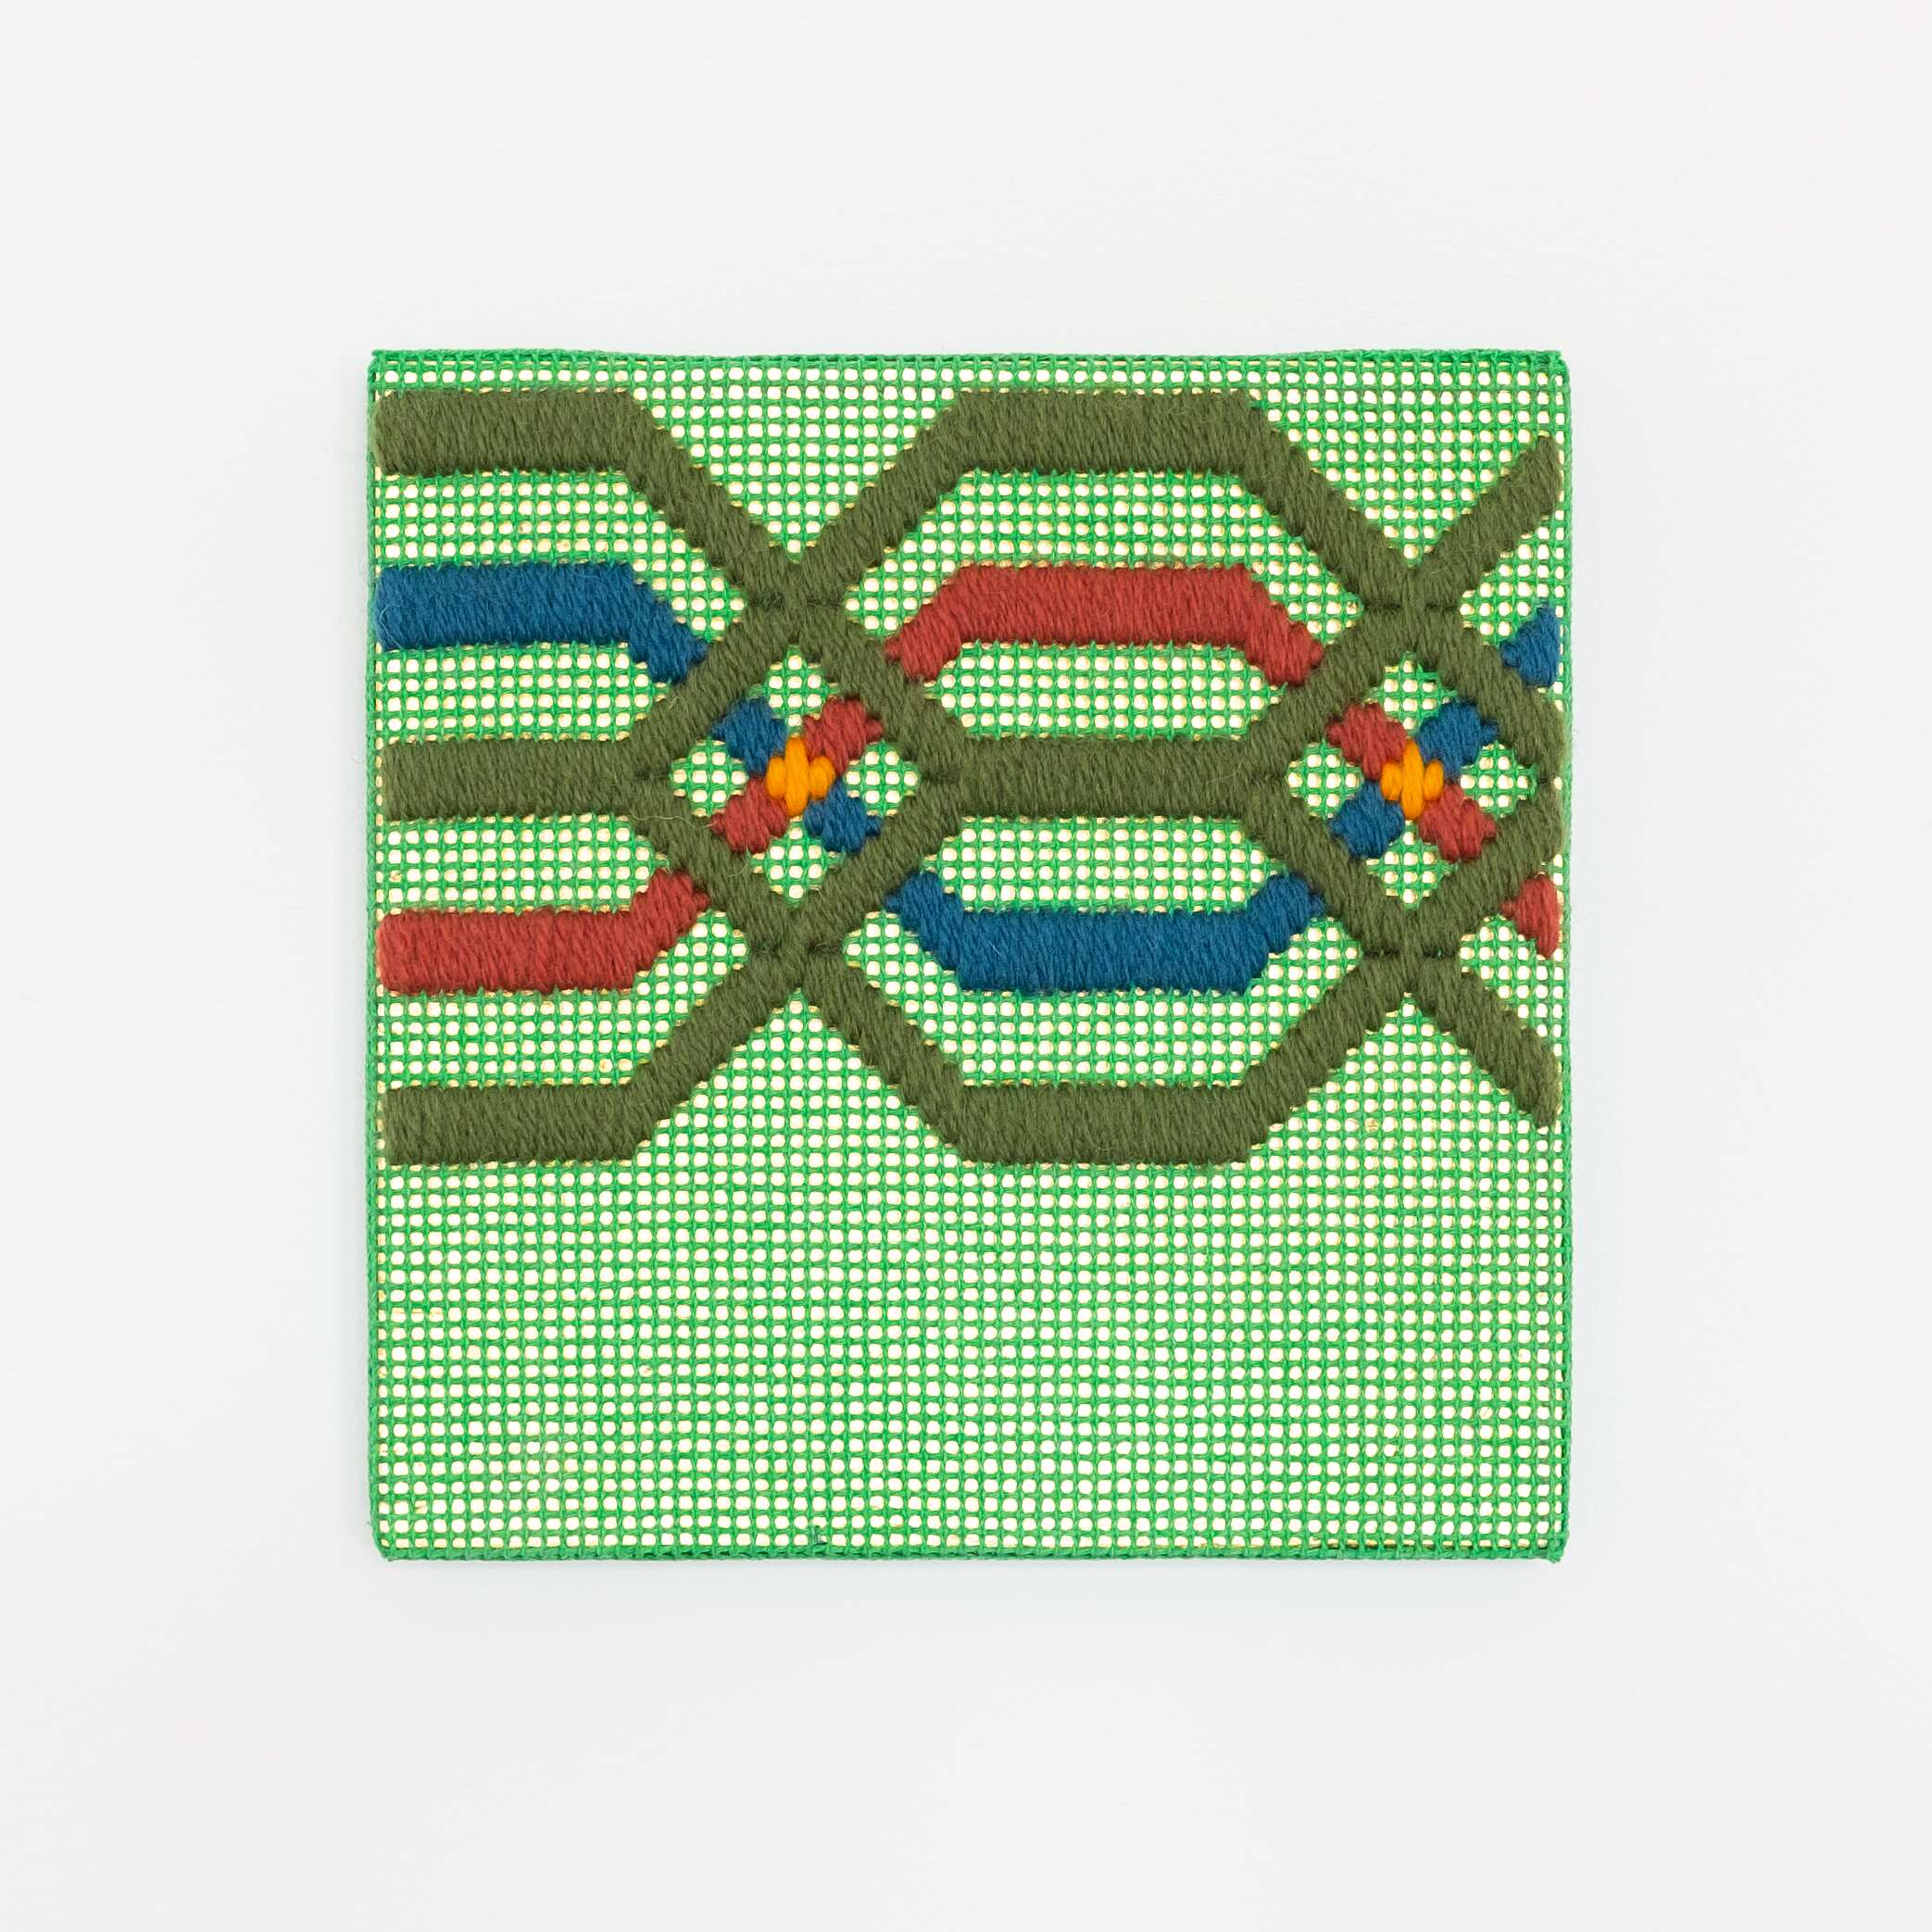 Border fragment [olive-red-blue on green], Hand-embroidered wool thread and acrylic paint on canvas over gilded panel, 2021